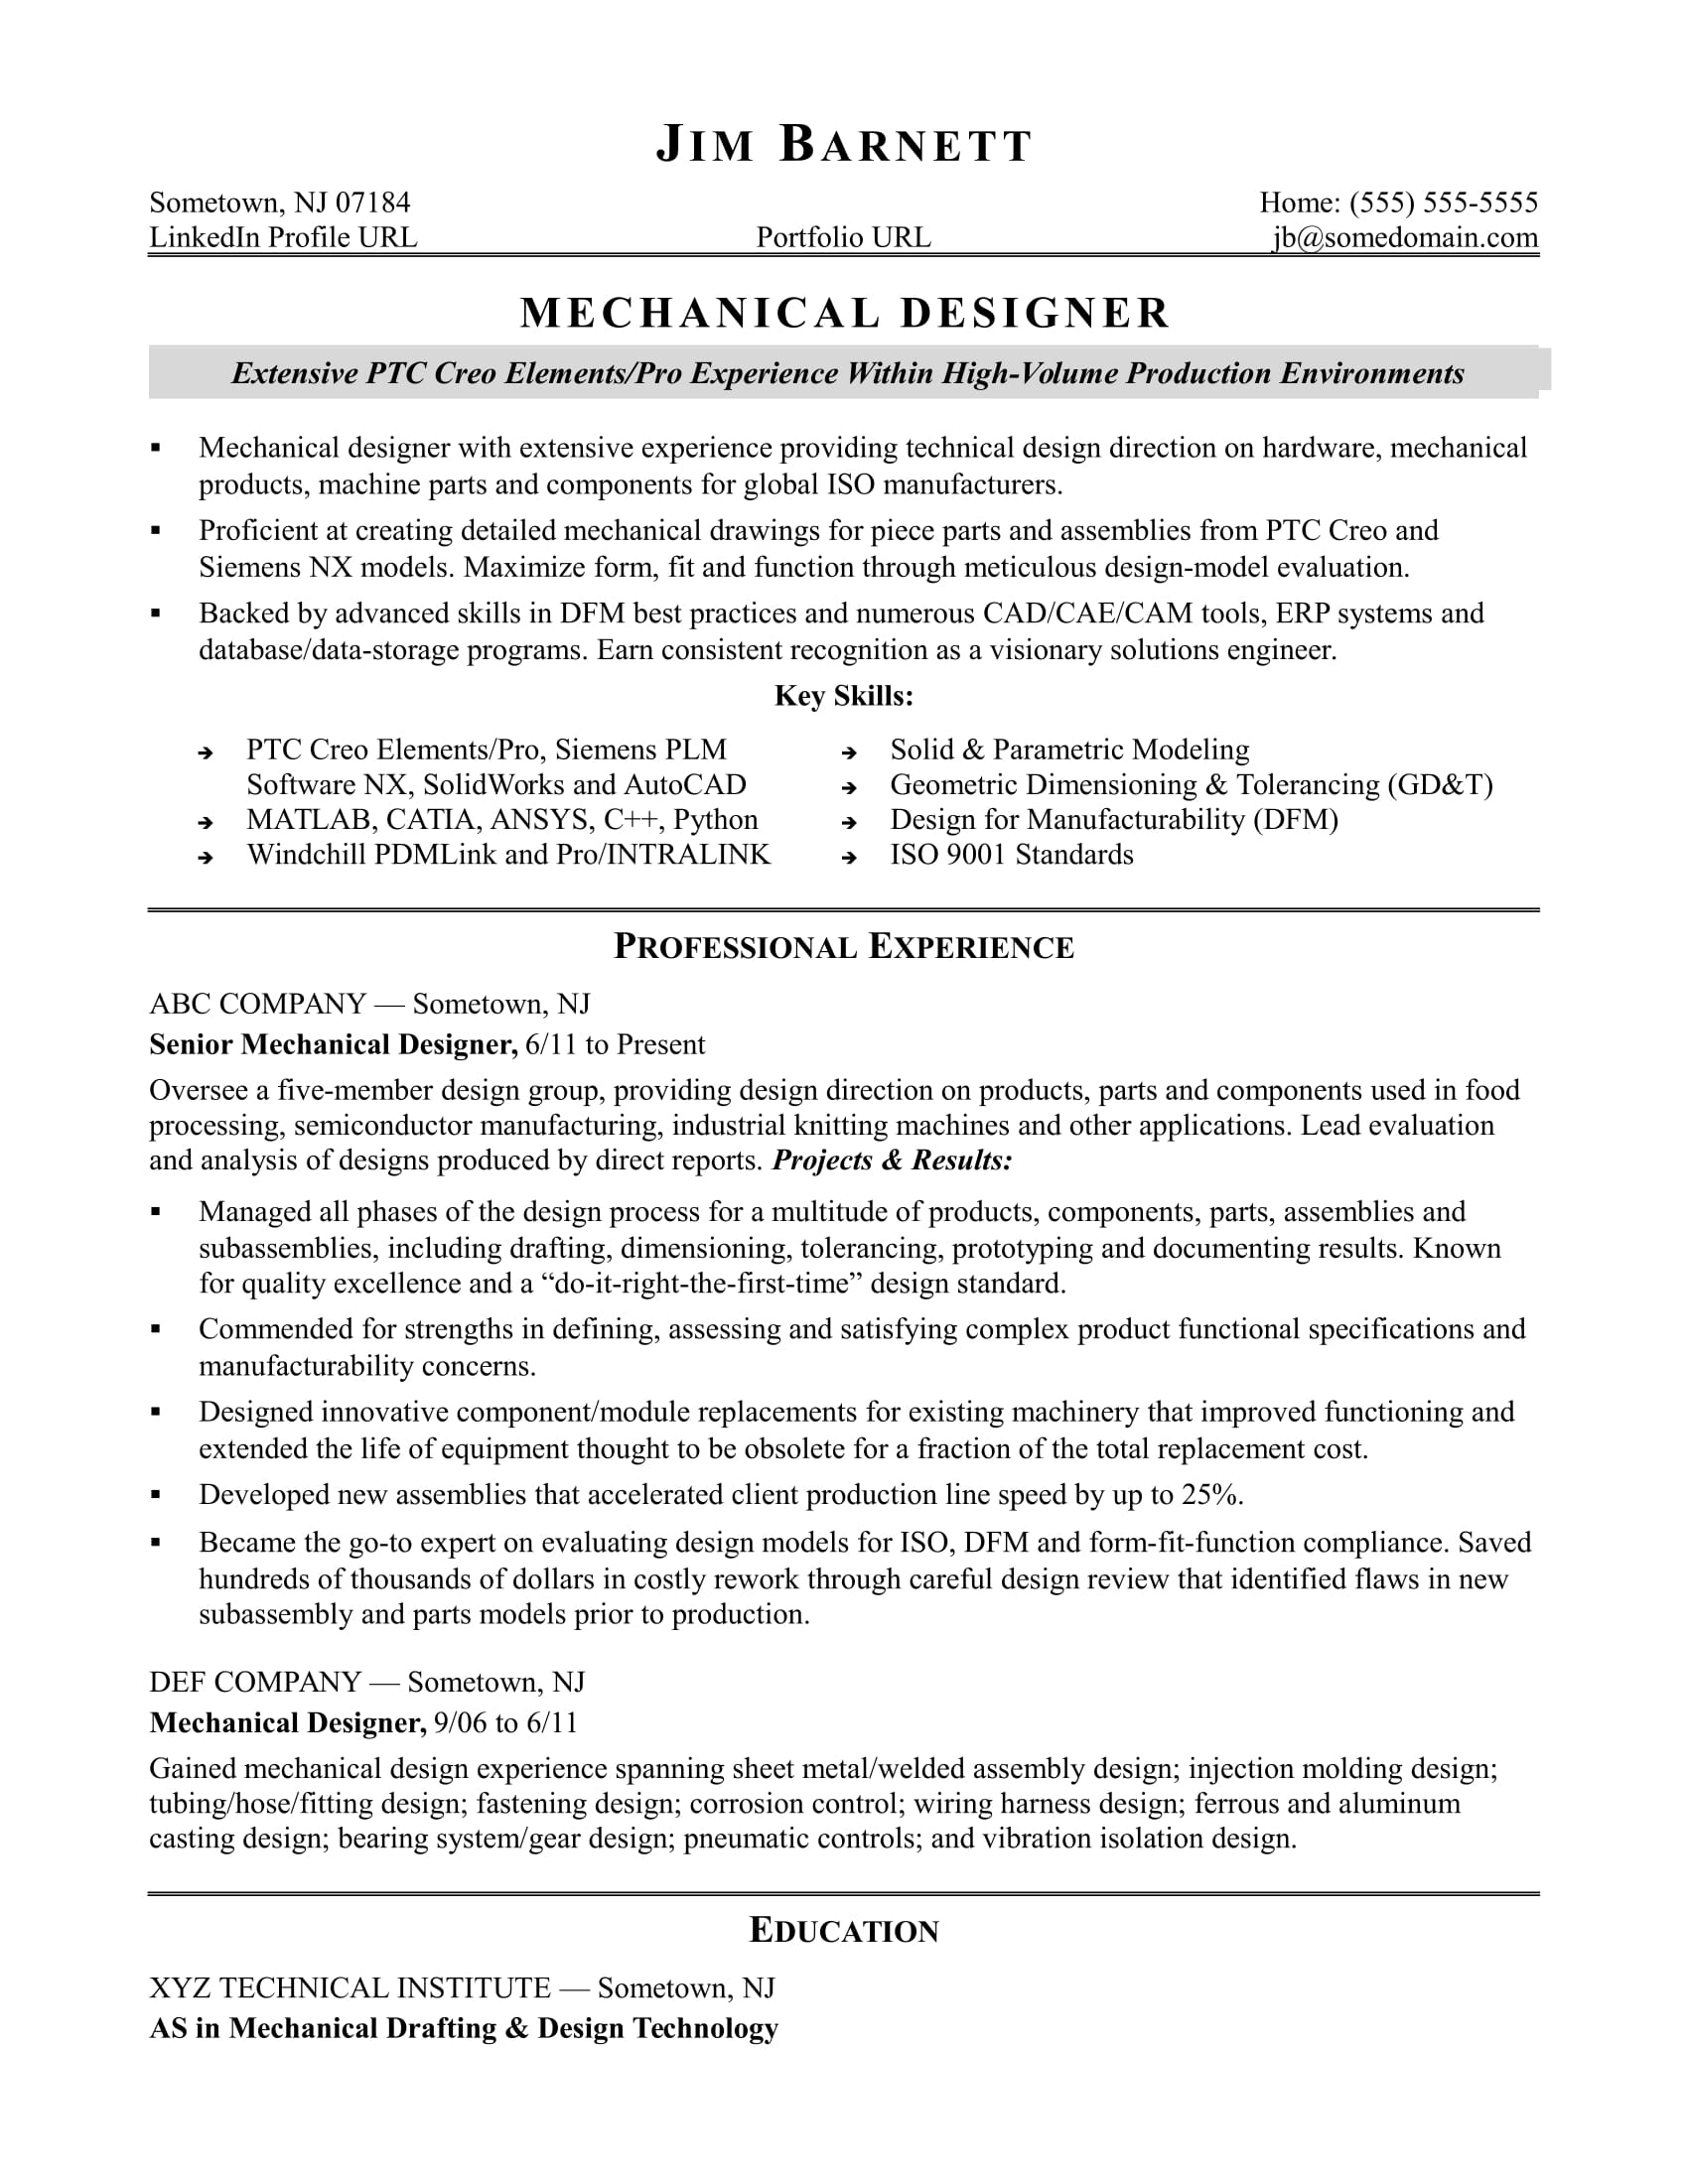 mechanical designer non experienced cv